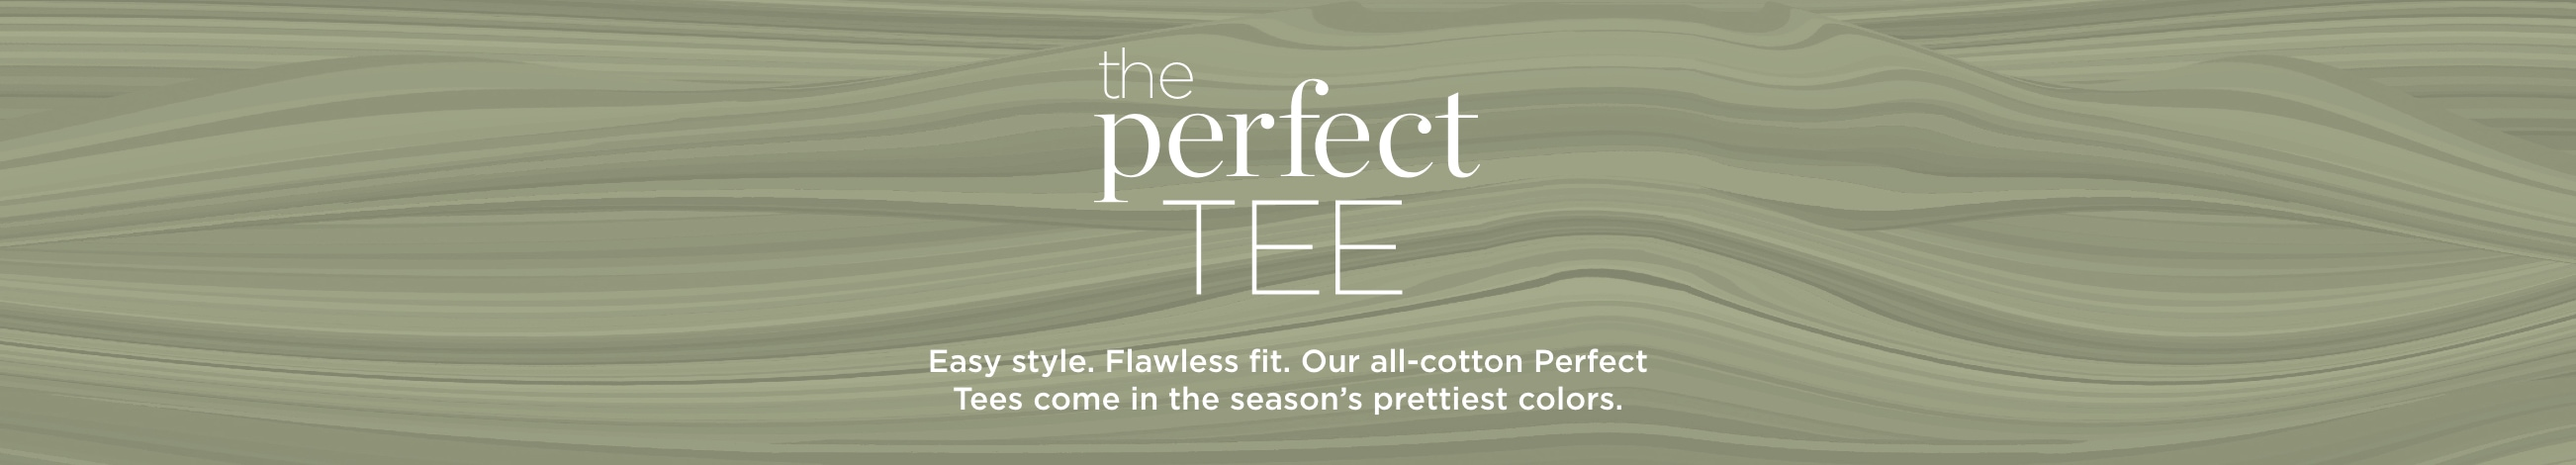 The Perfect Tee. Easy style. Flawless fit. Our all-cotton Perfect Tees come in the season's prettiest colors.